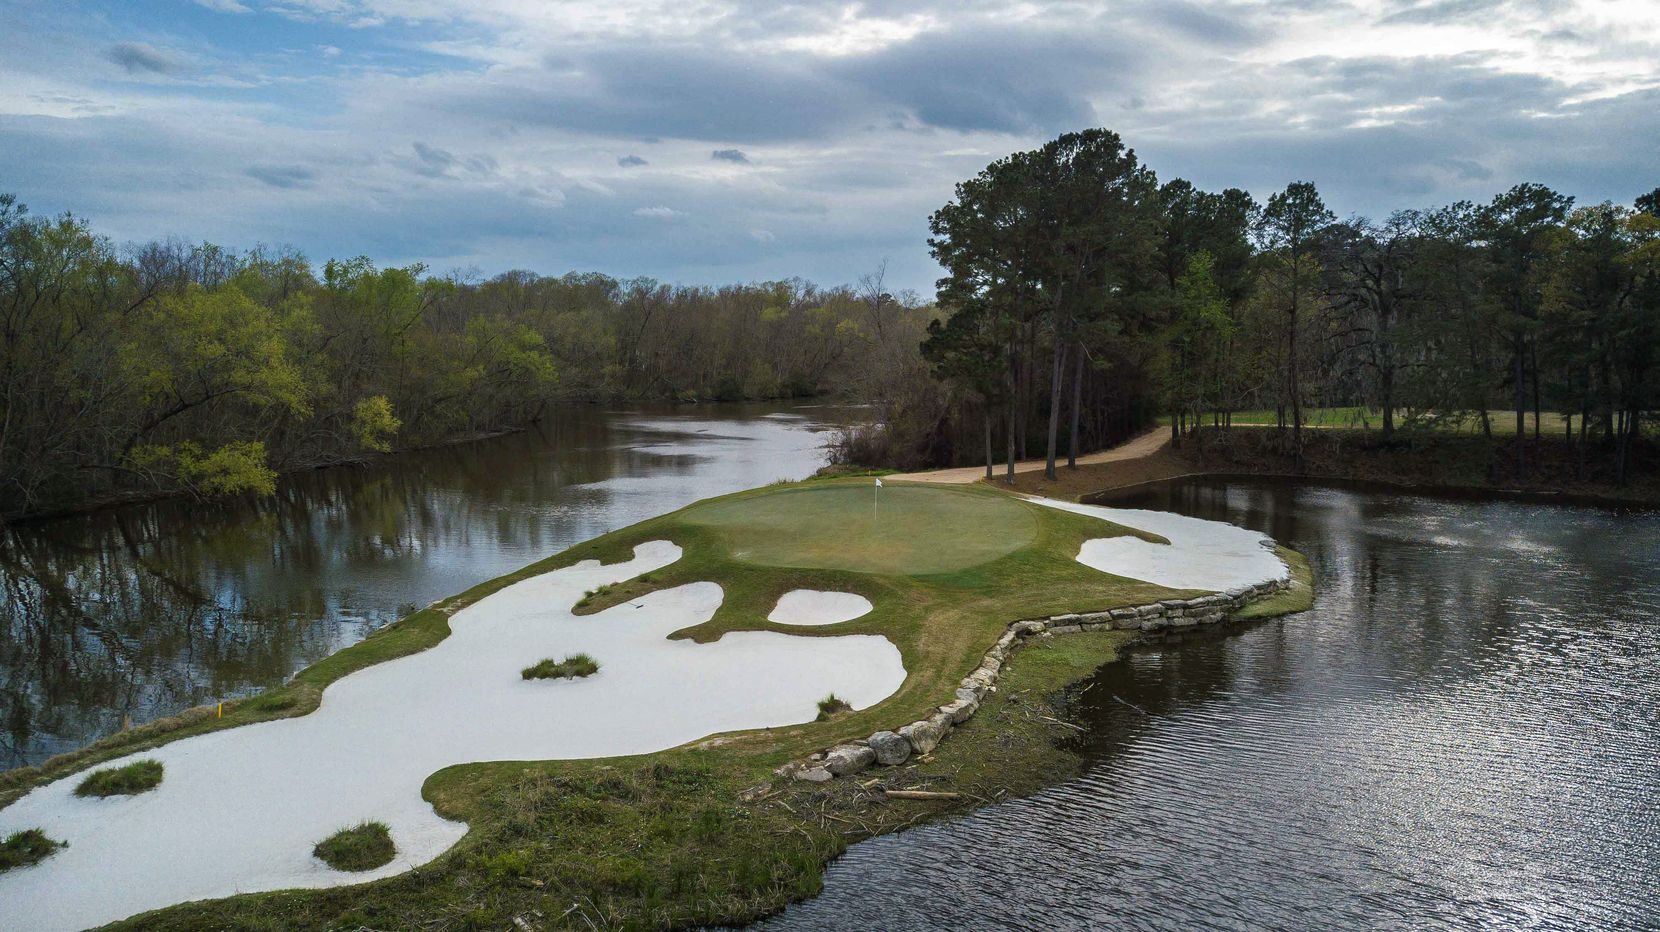 An aerial view of No. 15 at Whispering Pines Golf Club in Trinity, Texas, is a 179-yard par-3 hole from the Spirit tees.  It is annually voted one of the most beautiful holes in Texas by Texas Golf panelists. Caney Creek, which feeds Lake Livingston, is on the left.